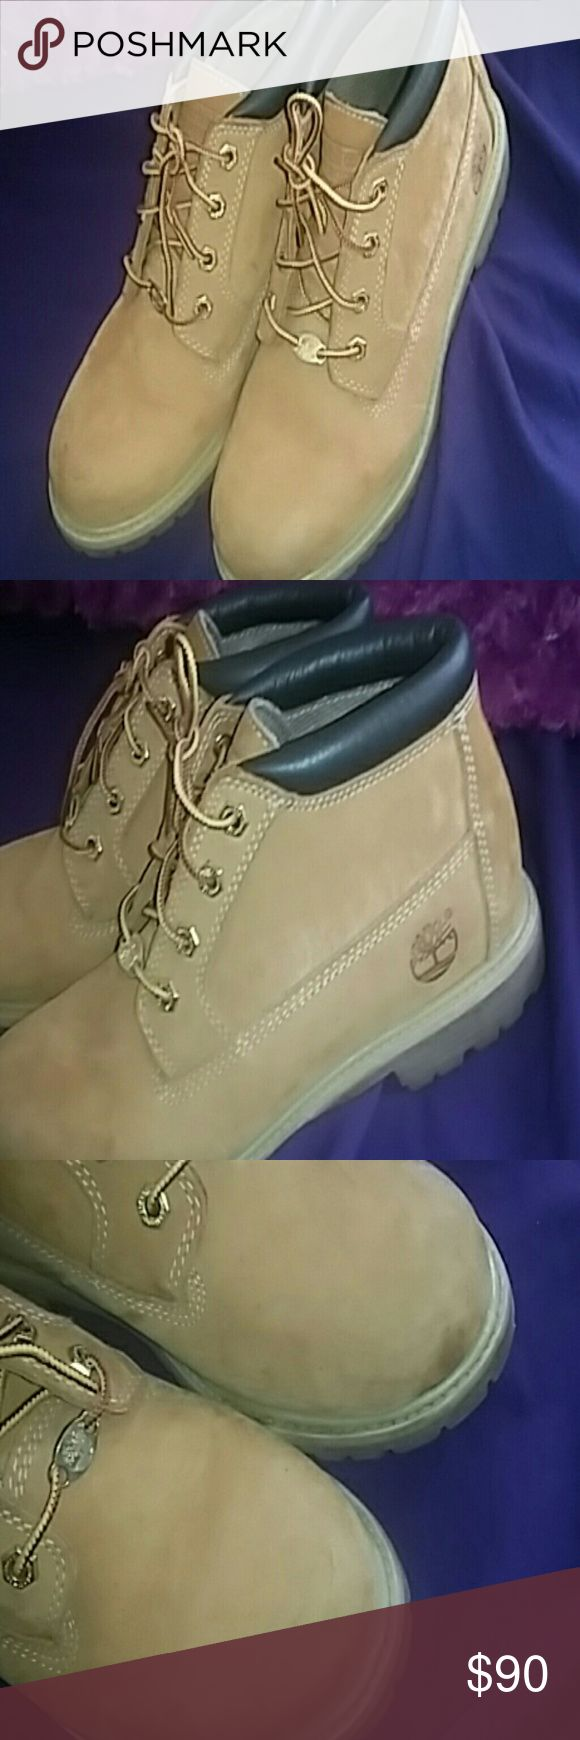 Timberland Nellies Timberland nellies, decent condition. Sorry for the SUPER BAD QUALITY PICTURES I took using poshmark camera instead of my camera Timberland Shoes Ankle Boots & Booties